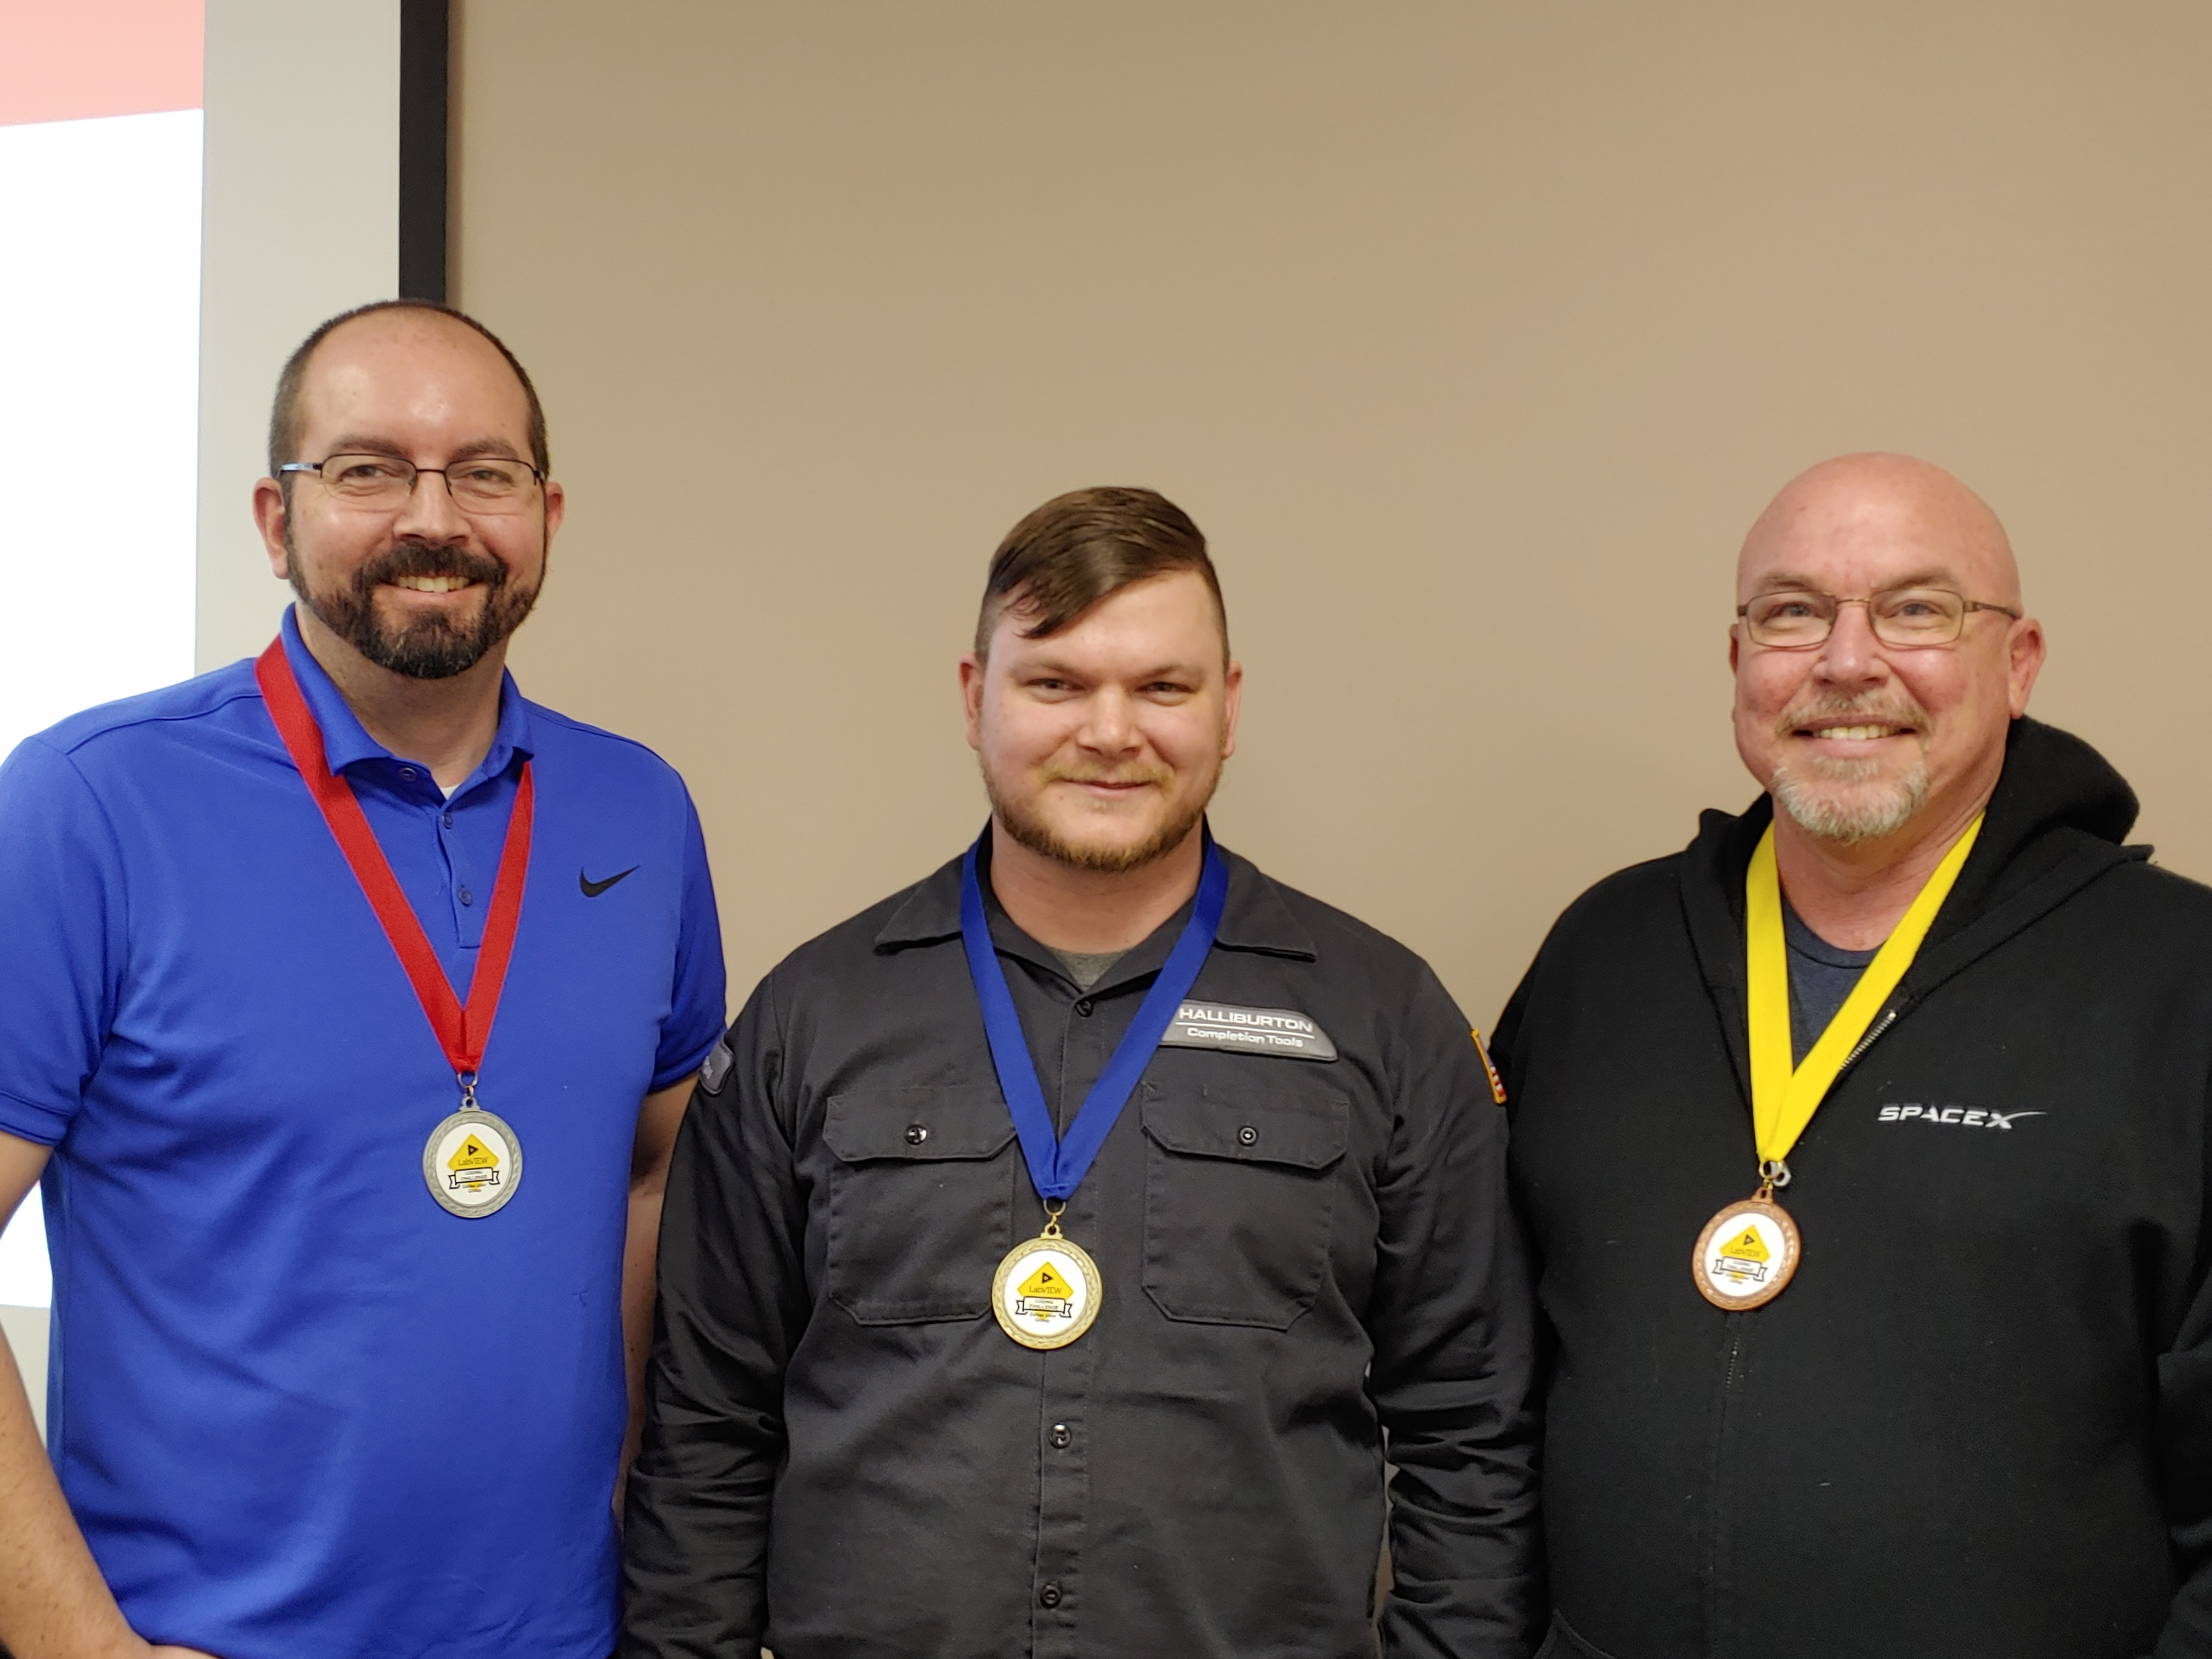 LabVIEW Coding Challenge Winners Dallas